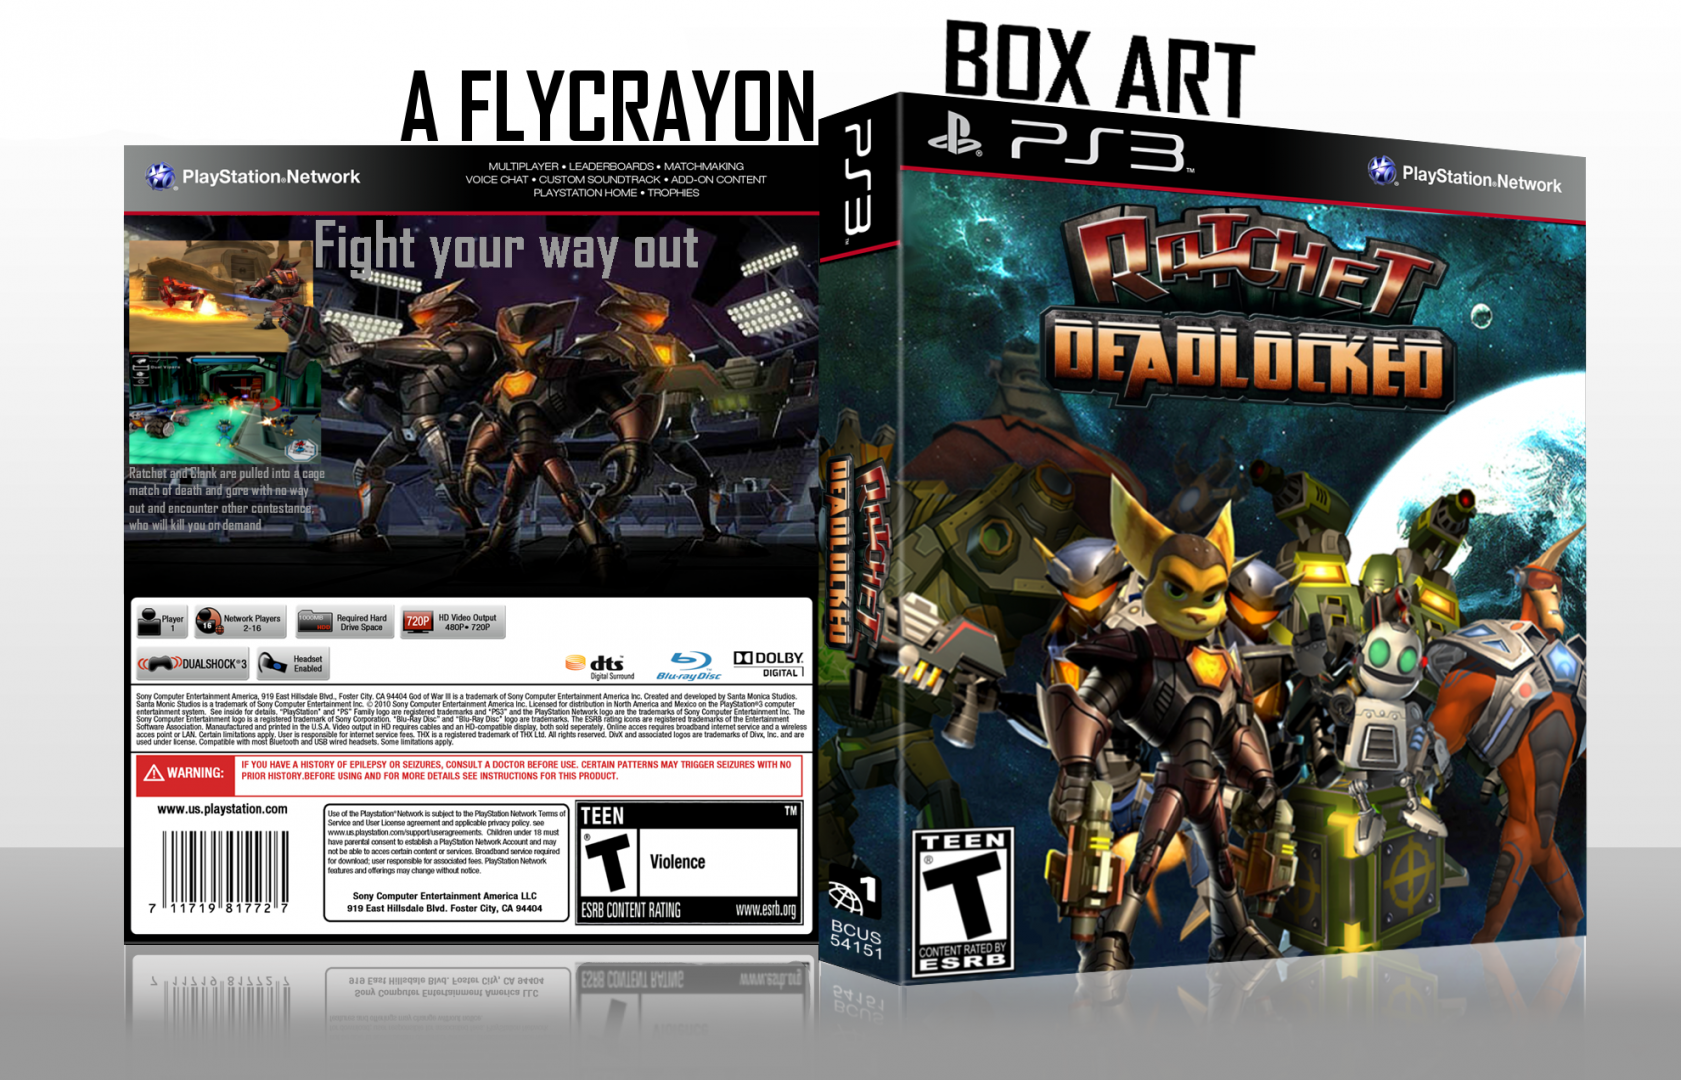 Ratchet & Clank Deadlocked/Gladiator HD remake For the PS3. Cover downloaded from the internet.